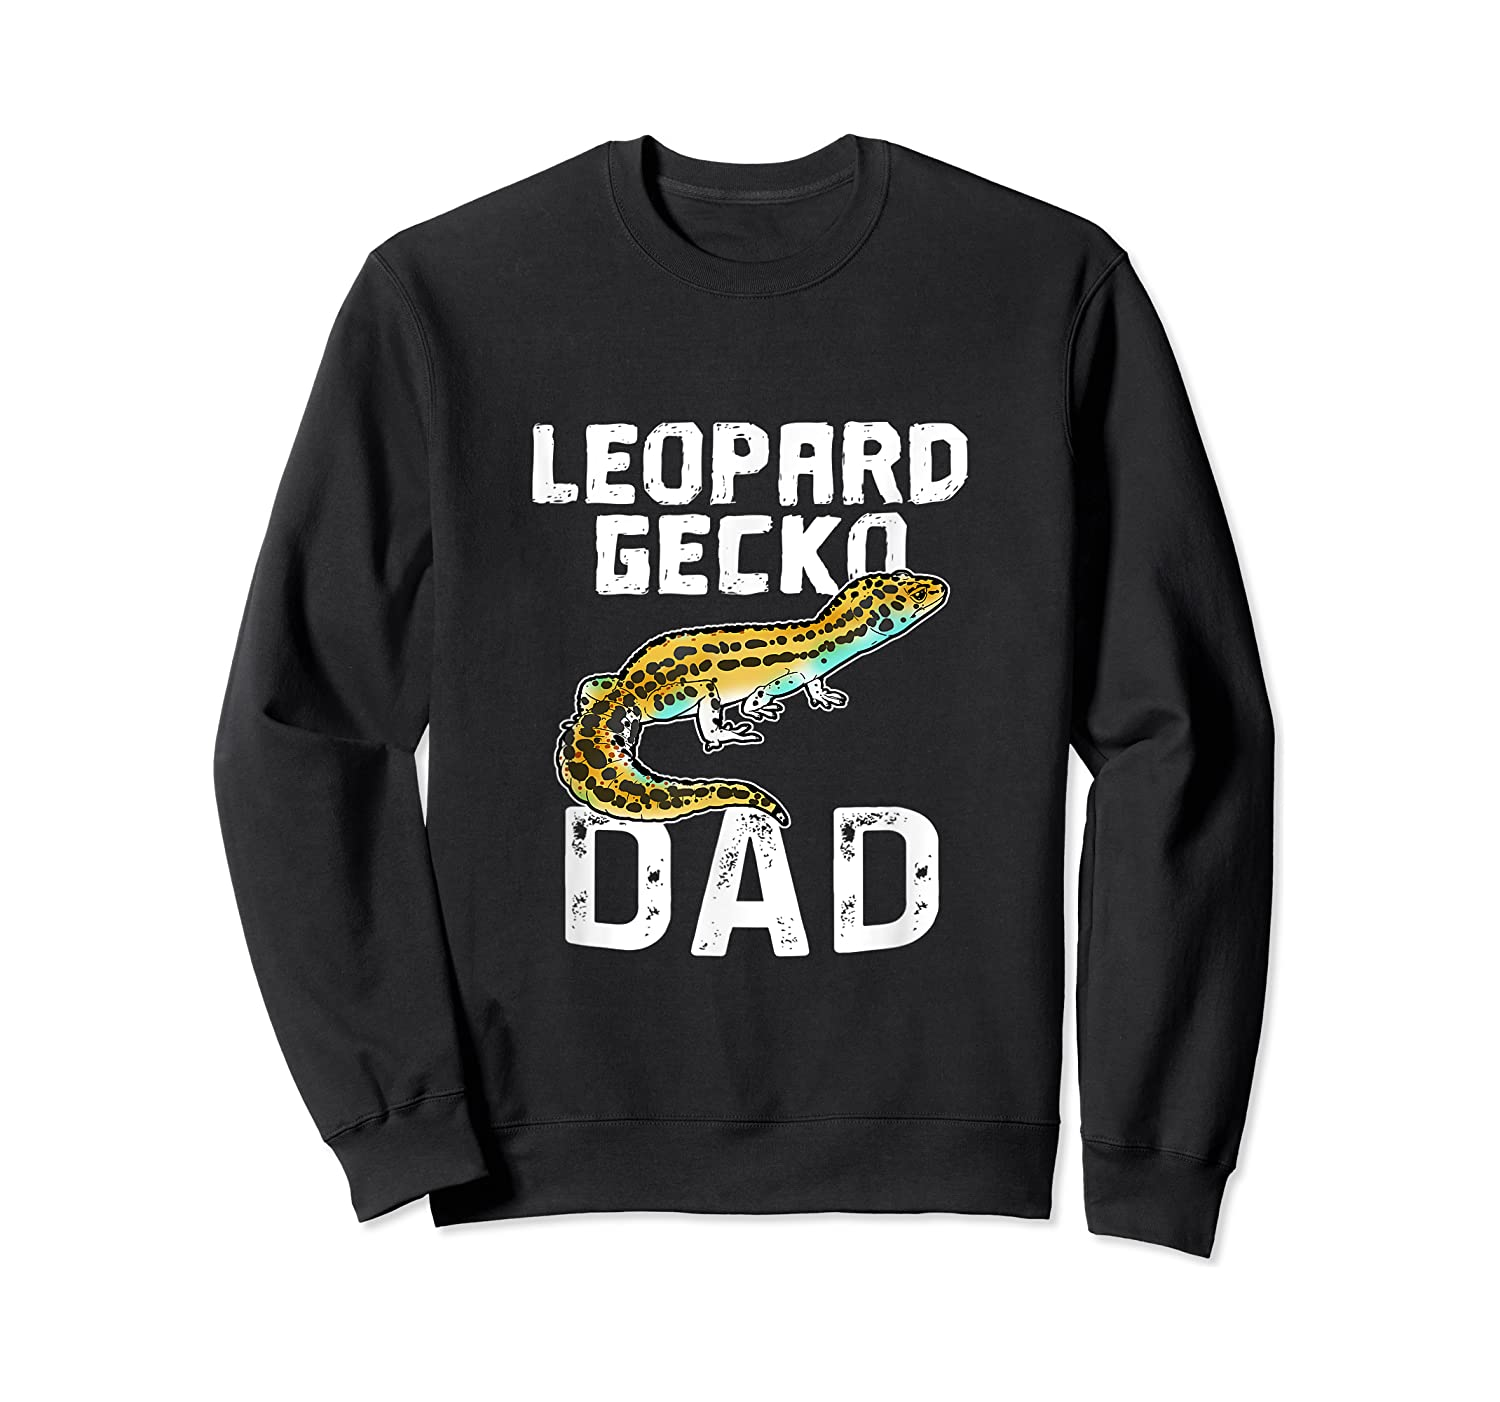 Funny Leopard Gecko Graphic Lizard Lover Reptile Dad Gift T-shirt Crewneck Sweater